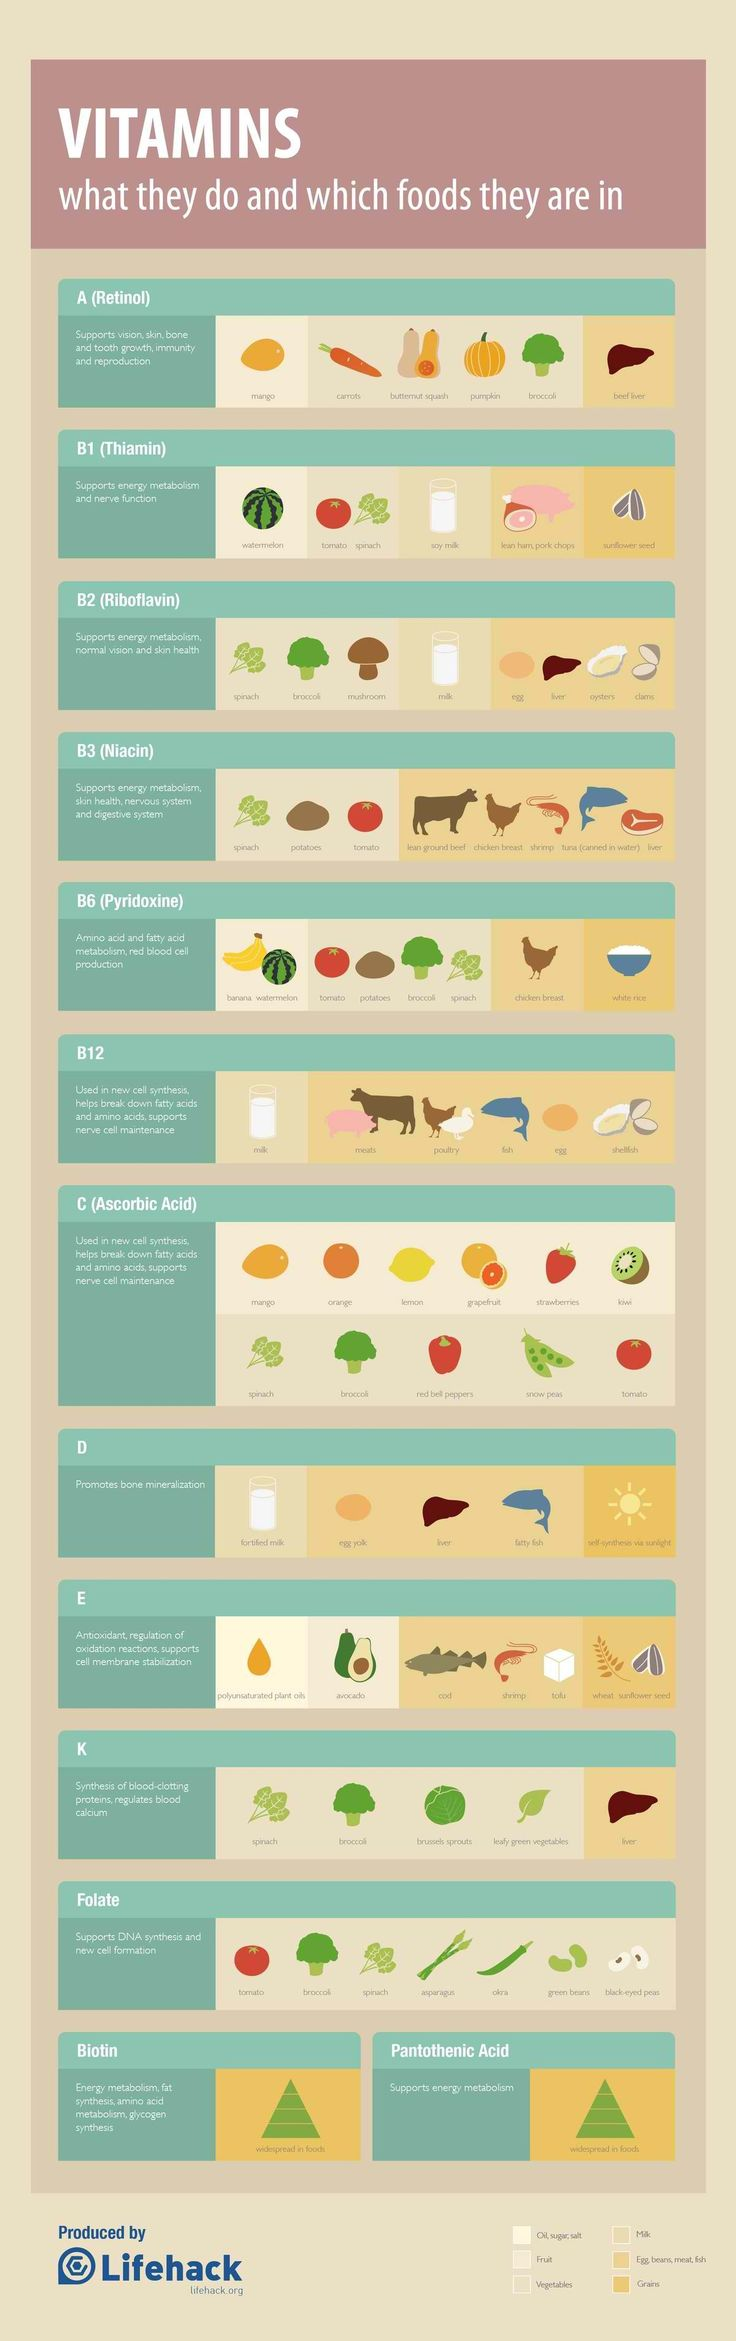 Vitamins Cheat Sheet: What They Do and Good Food Sources